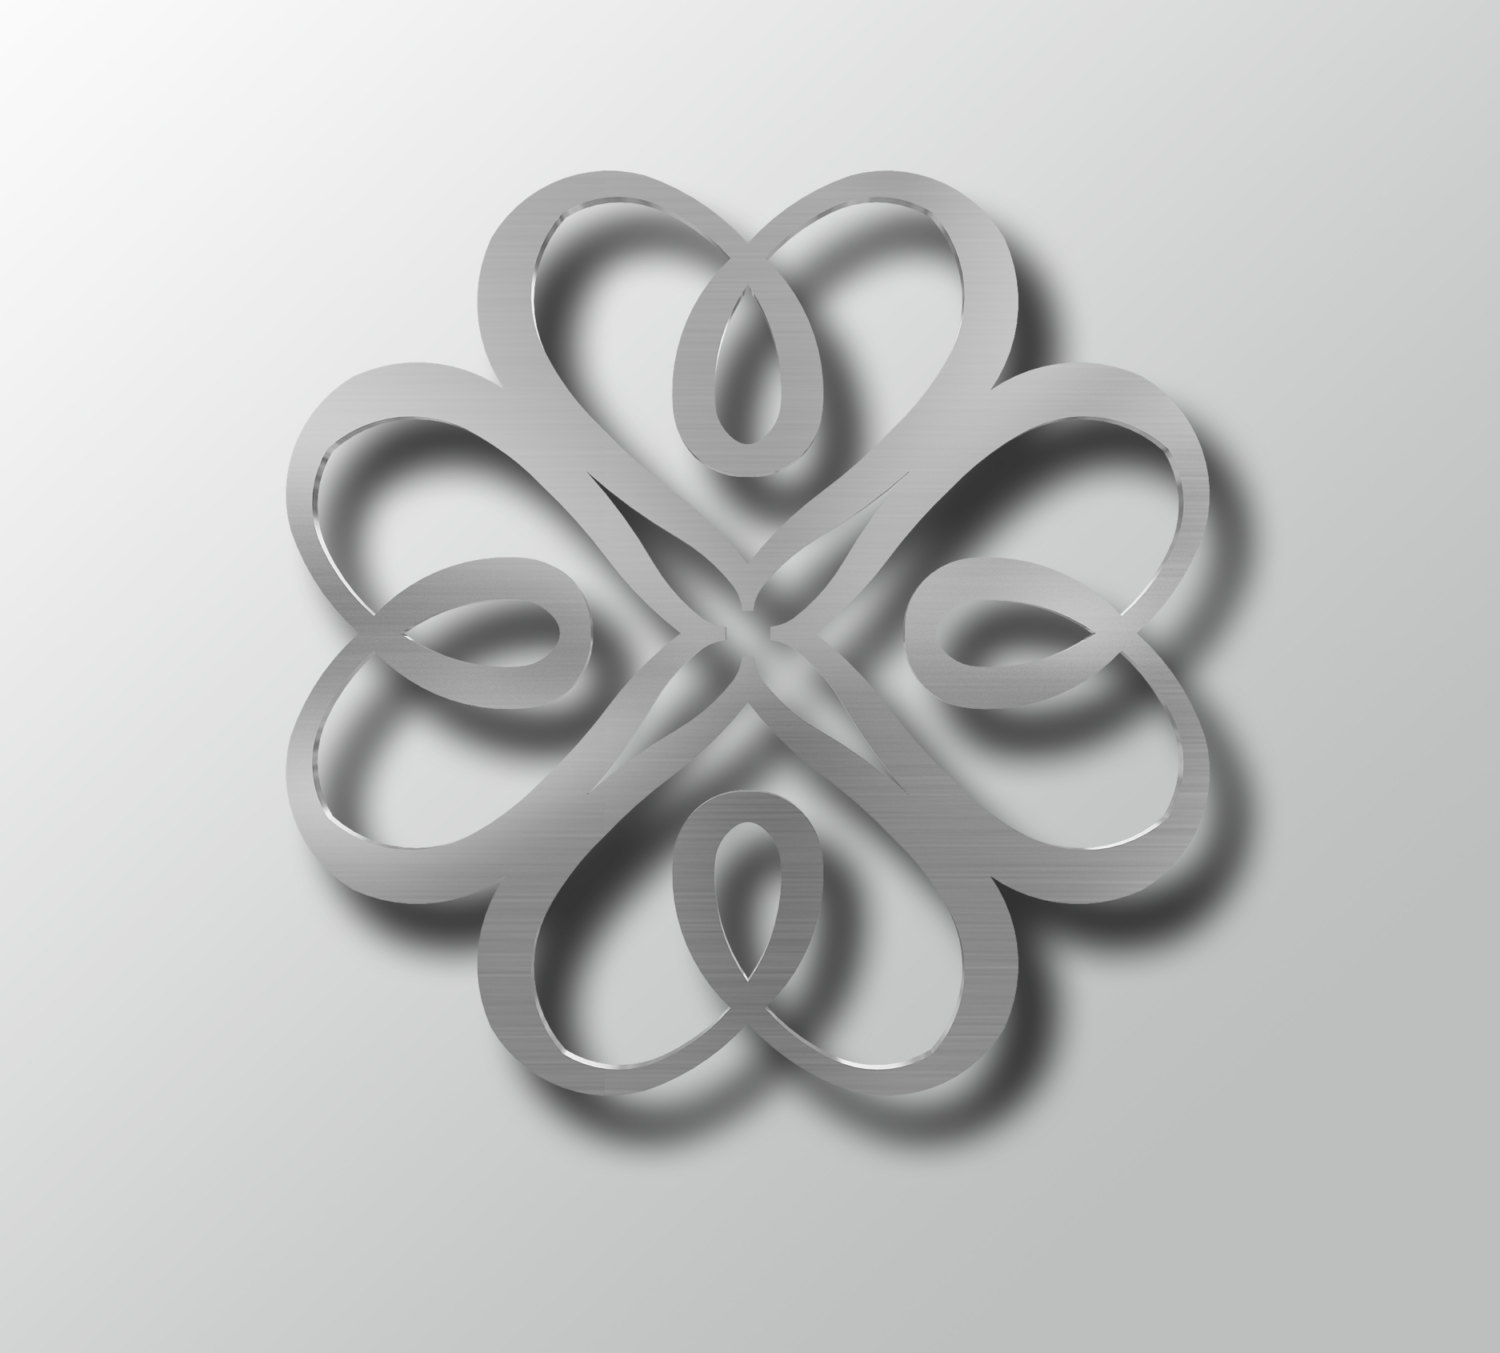 Bedroom : Metal Flower Wall Decor Round Metal Wall Art Wrought In Most Recently Released Abstract Iron Wall Art (View 17 of 20)